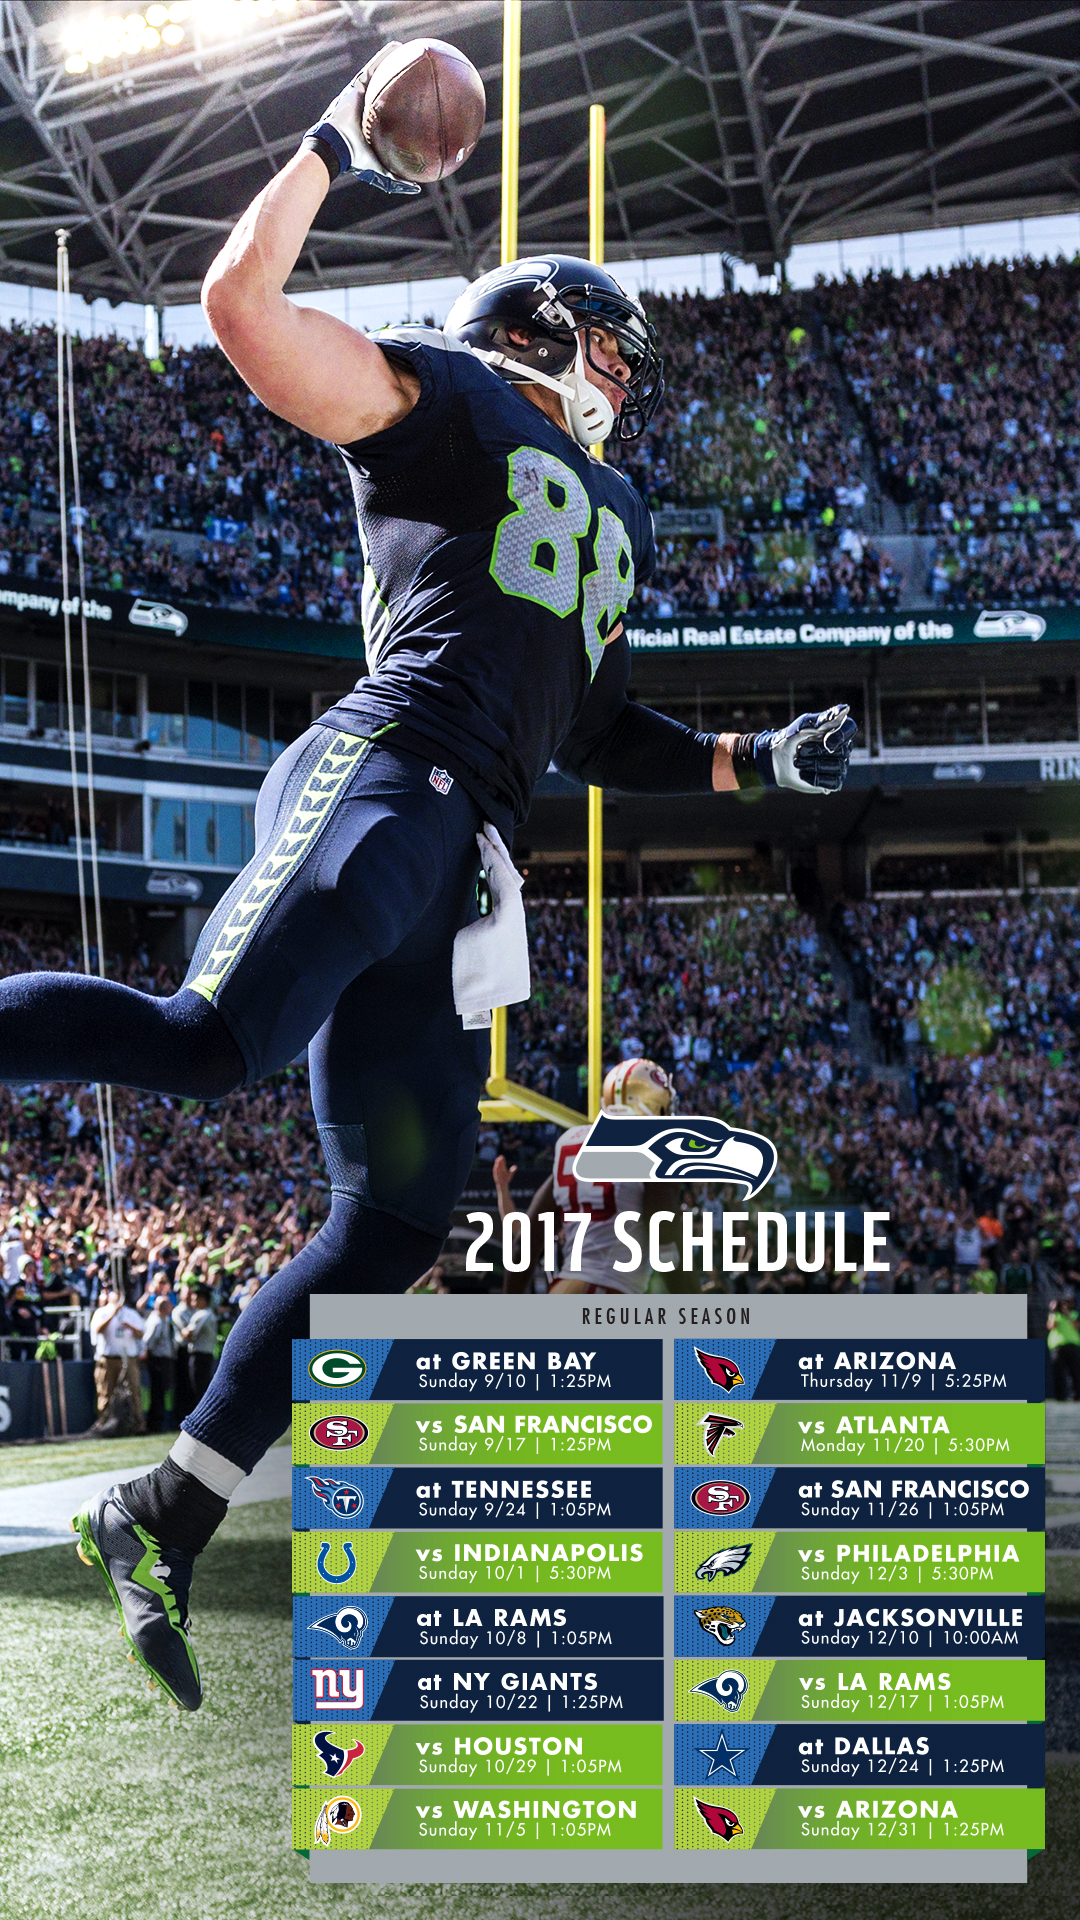 graphic relating to Seattle Seahawks Printable Schedule named 20+ Seattle Seahawks 2017 Plan Printable Illustrations or photos and